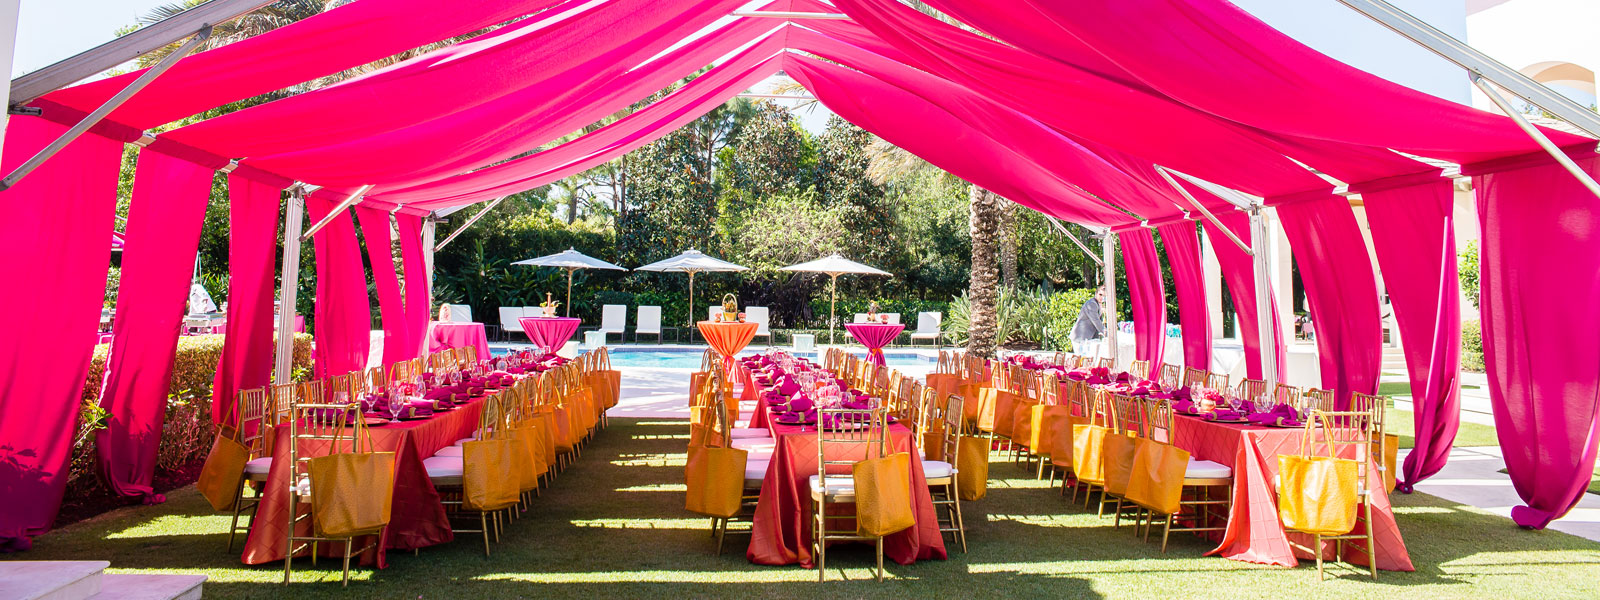 Where Can I Rent Tables And Chairs Event Rental Jupiter Party Rental Table Rental Chair Rental